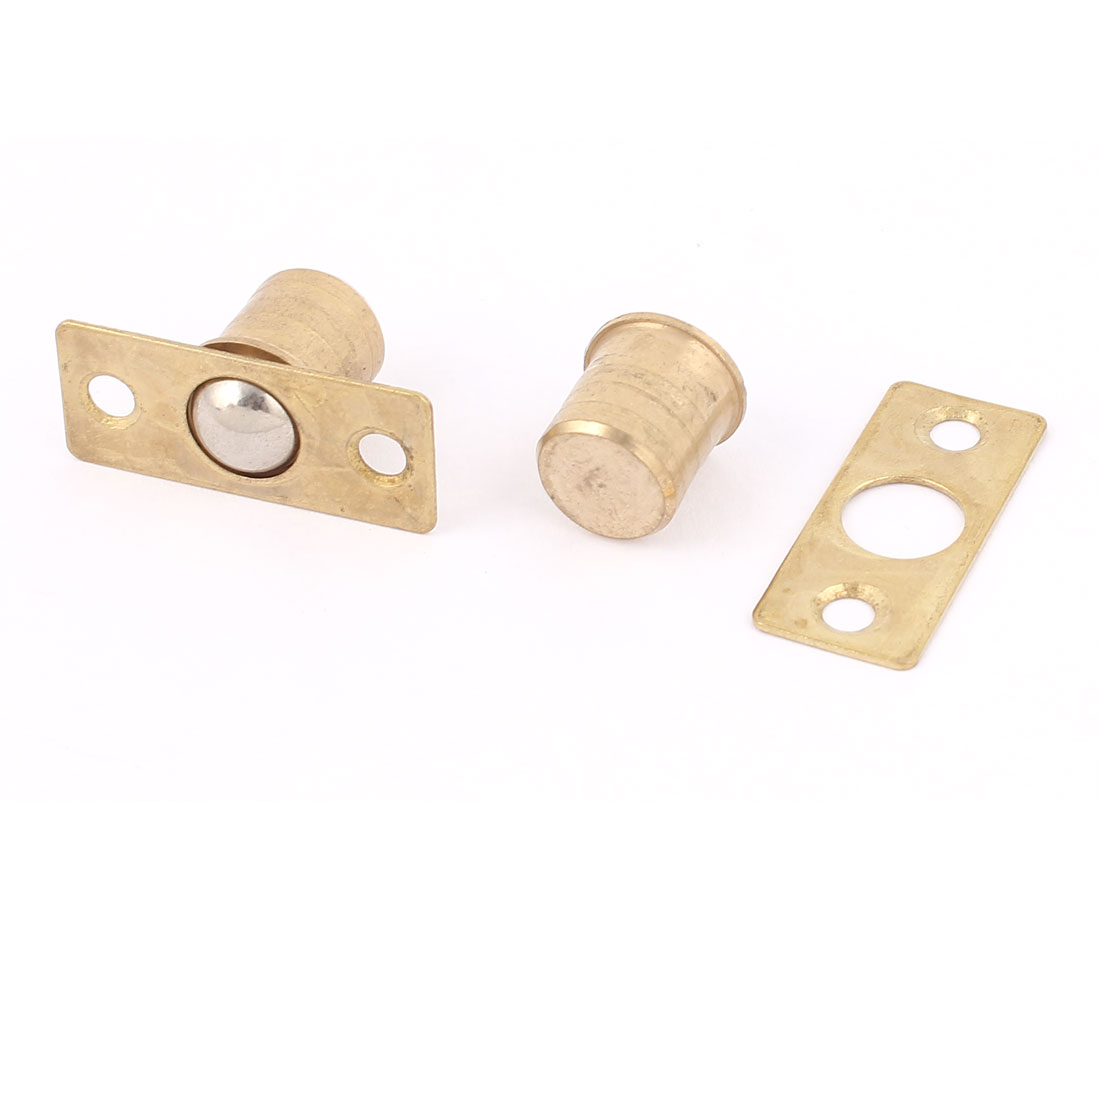 4Set Gold Tone Hardware Closet Door 9mm x 14mm Ball Catch Latch Catcher